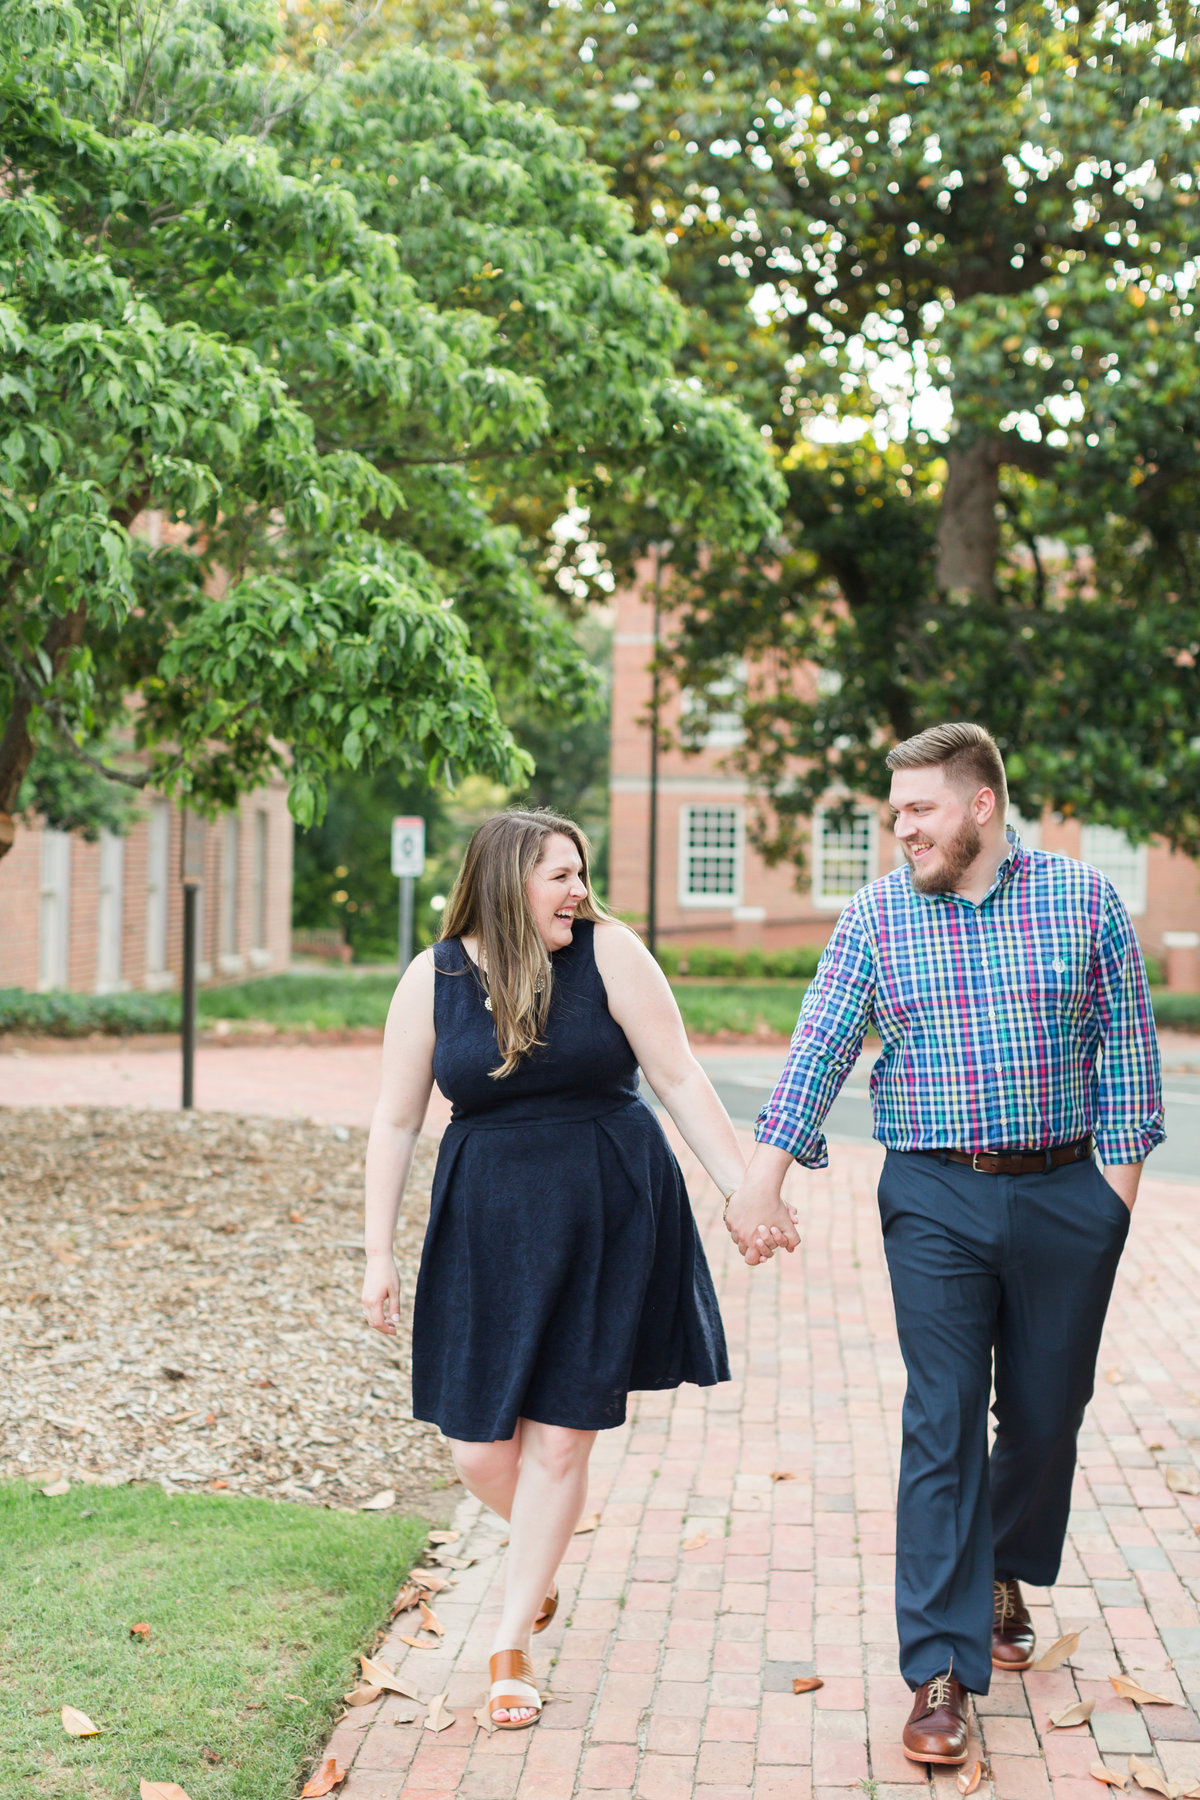 Katie and Ian Engaged-Samantha Laffoon Photography-88